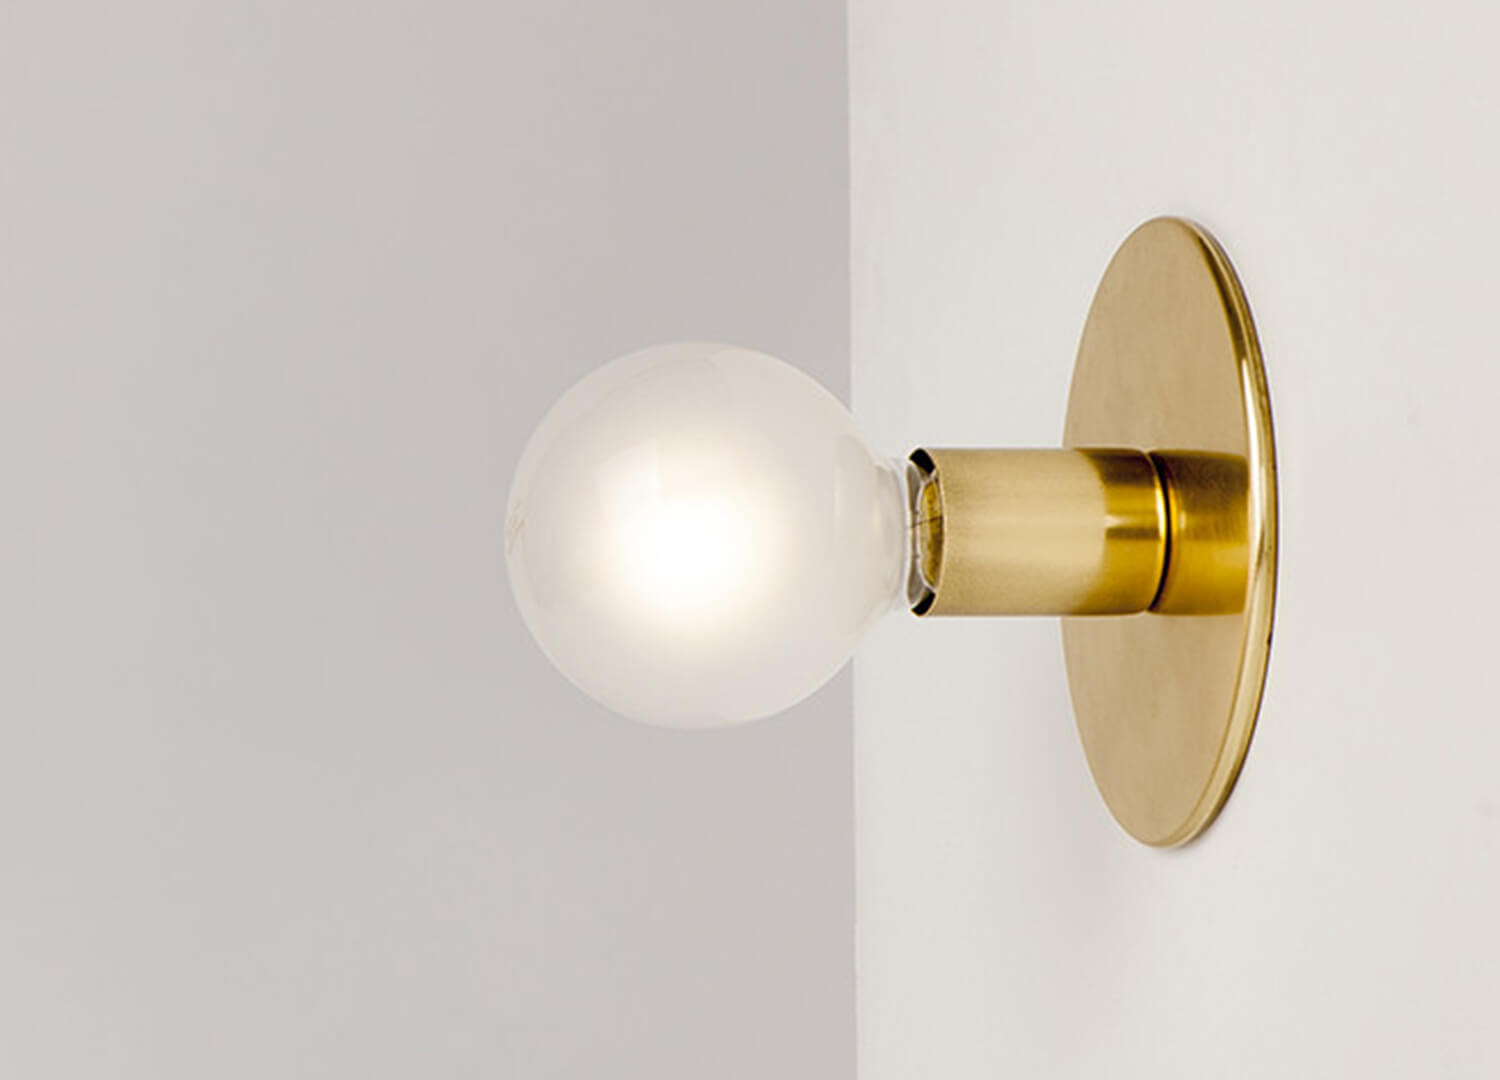 est living lord sconce dowel jones.01